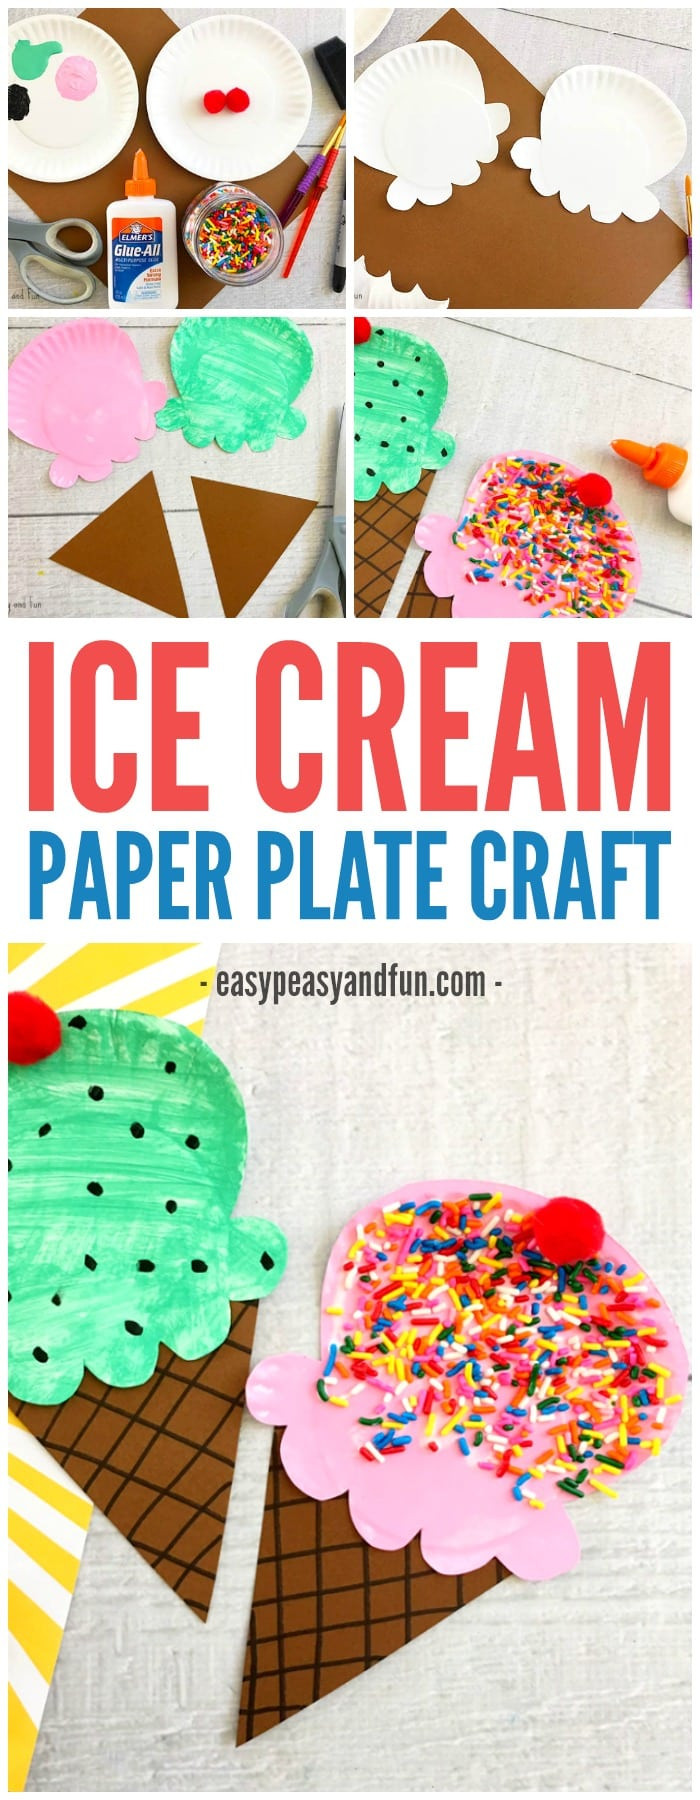 Best ideas about Fun Art Projects For Preschoolers . Save or Pin Paper Plate Ice Cream Craft Summer Craft Idea for Kids Now.